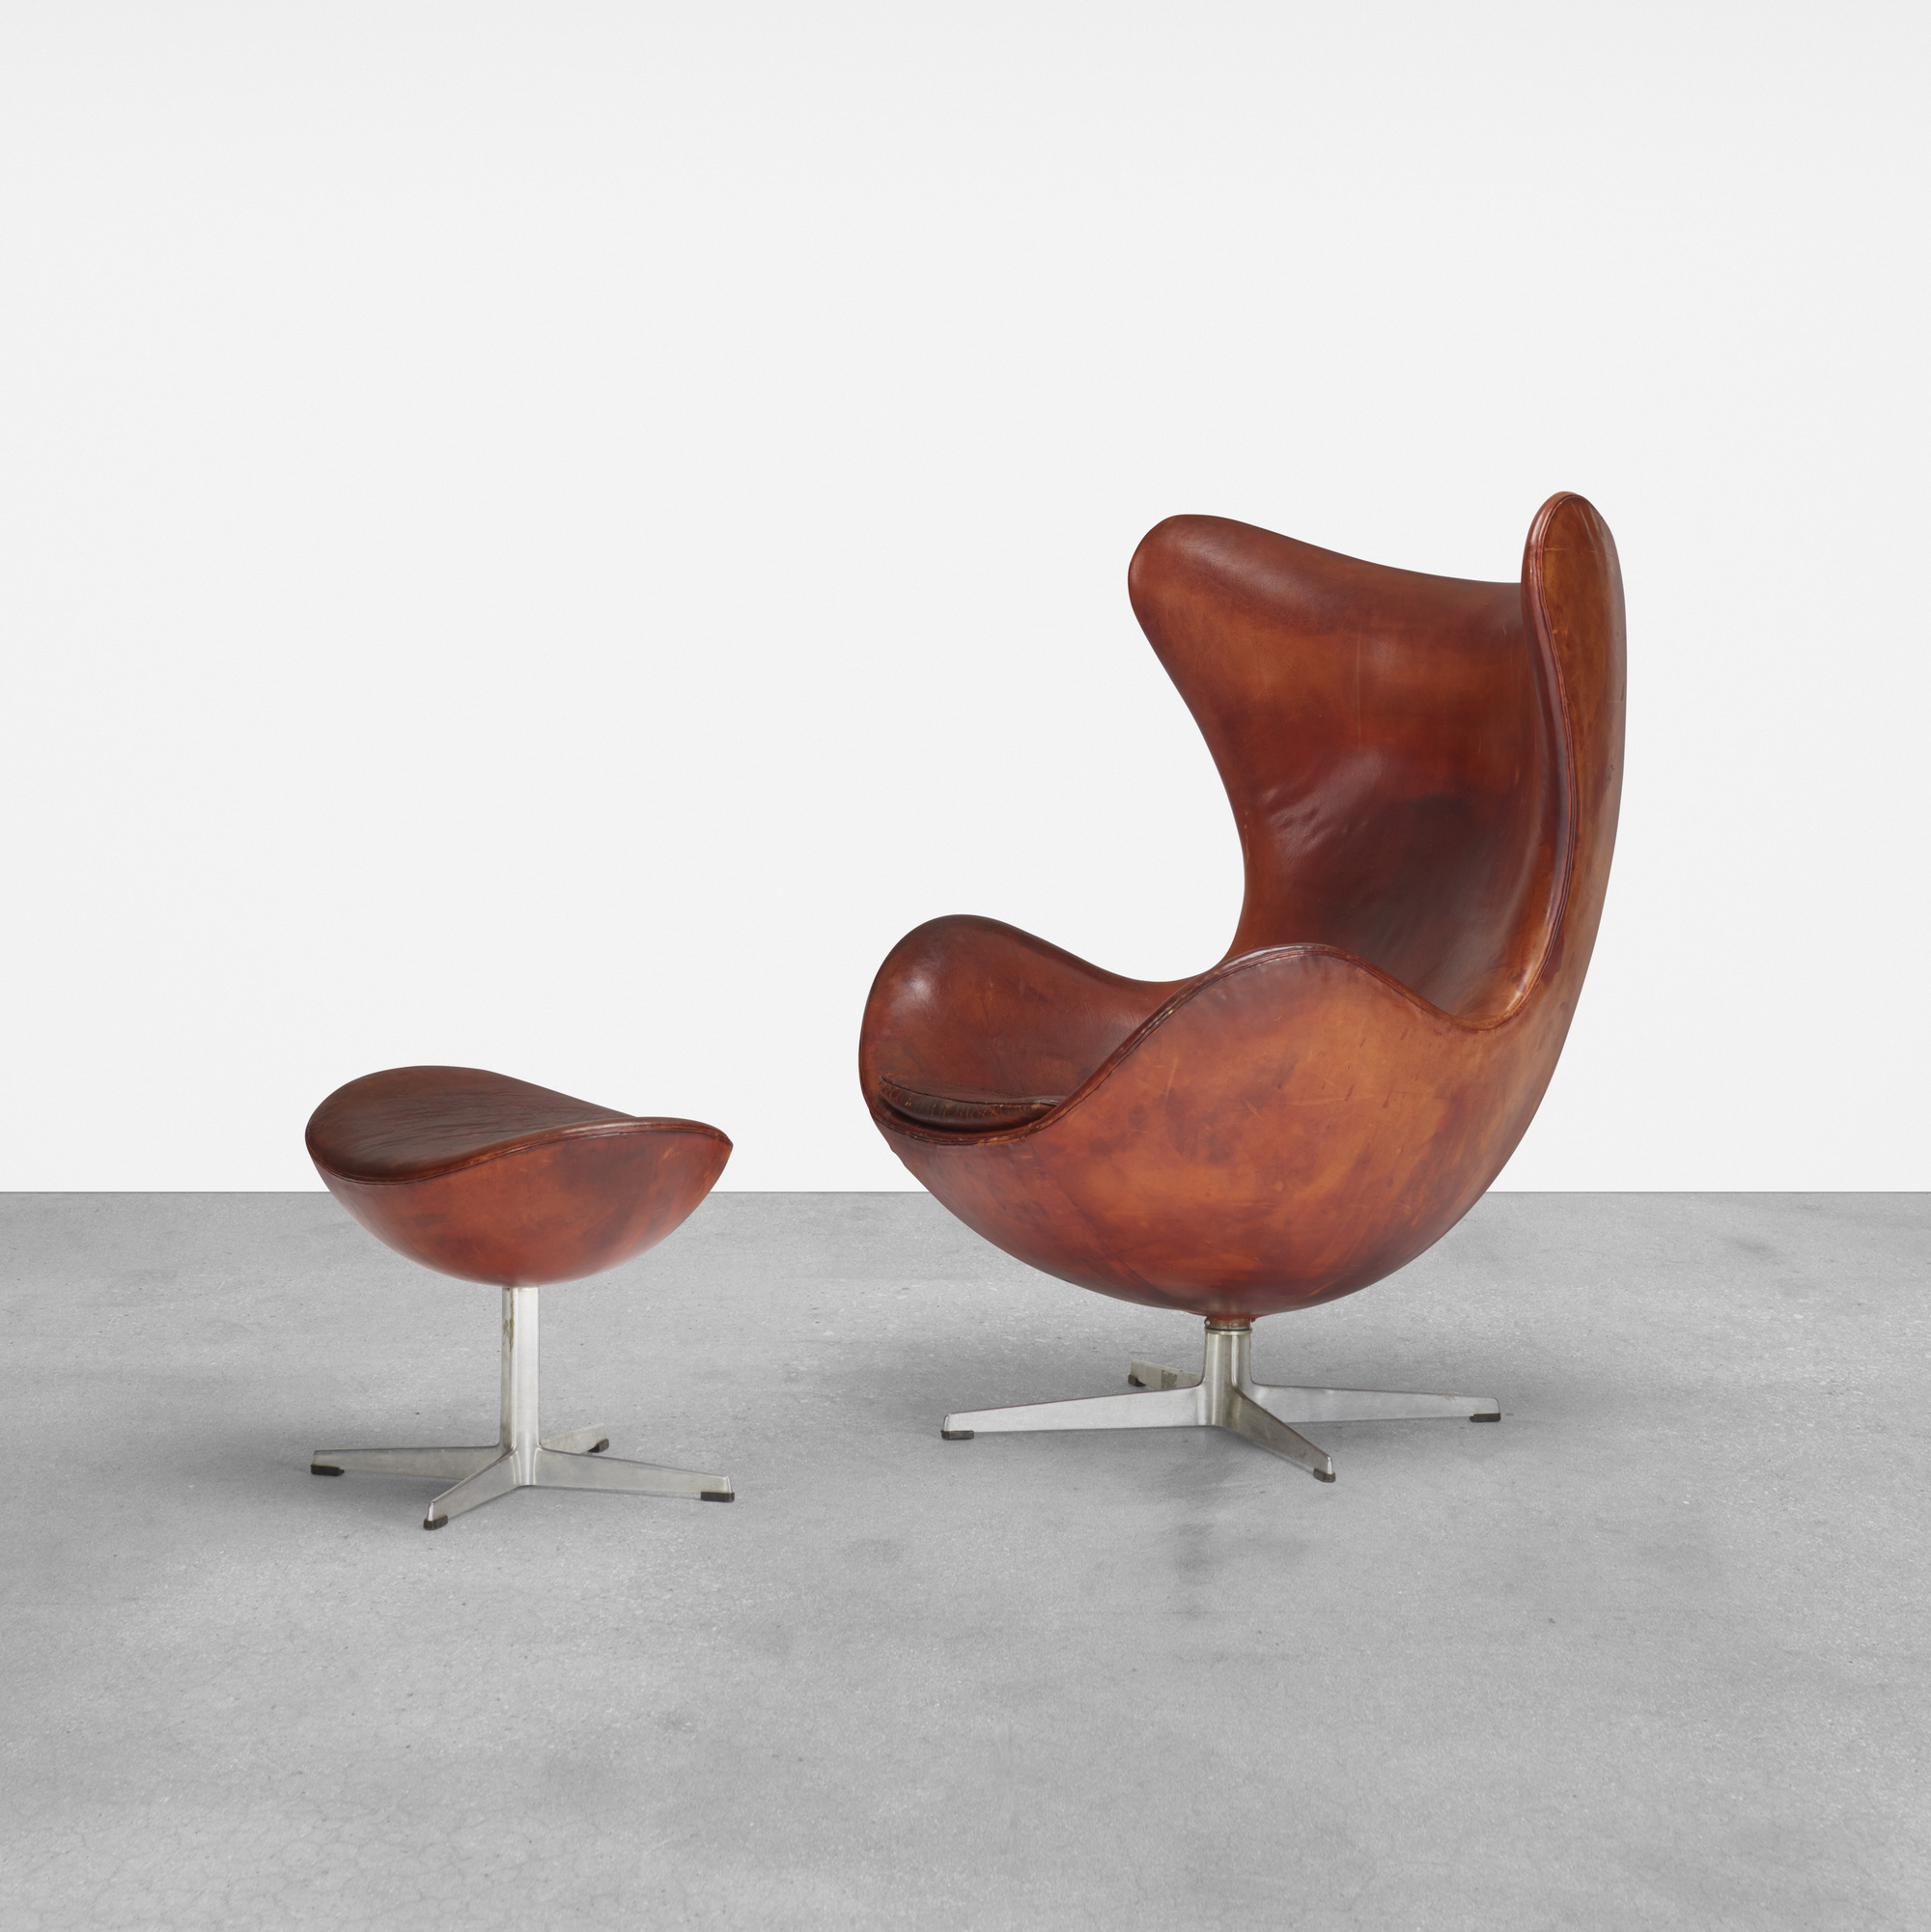 Genial 379: Arne Jacobsen / Egg Chair And Ottoman (1 Of 3)